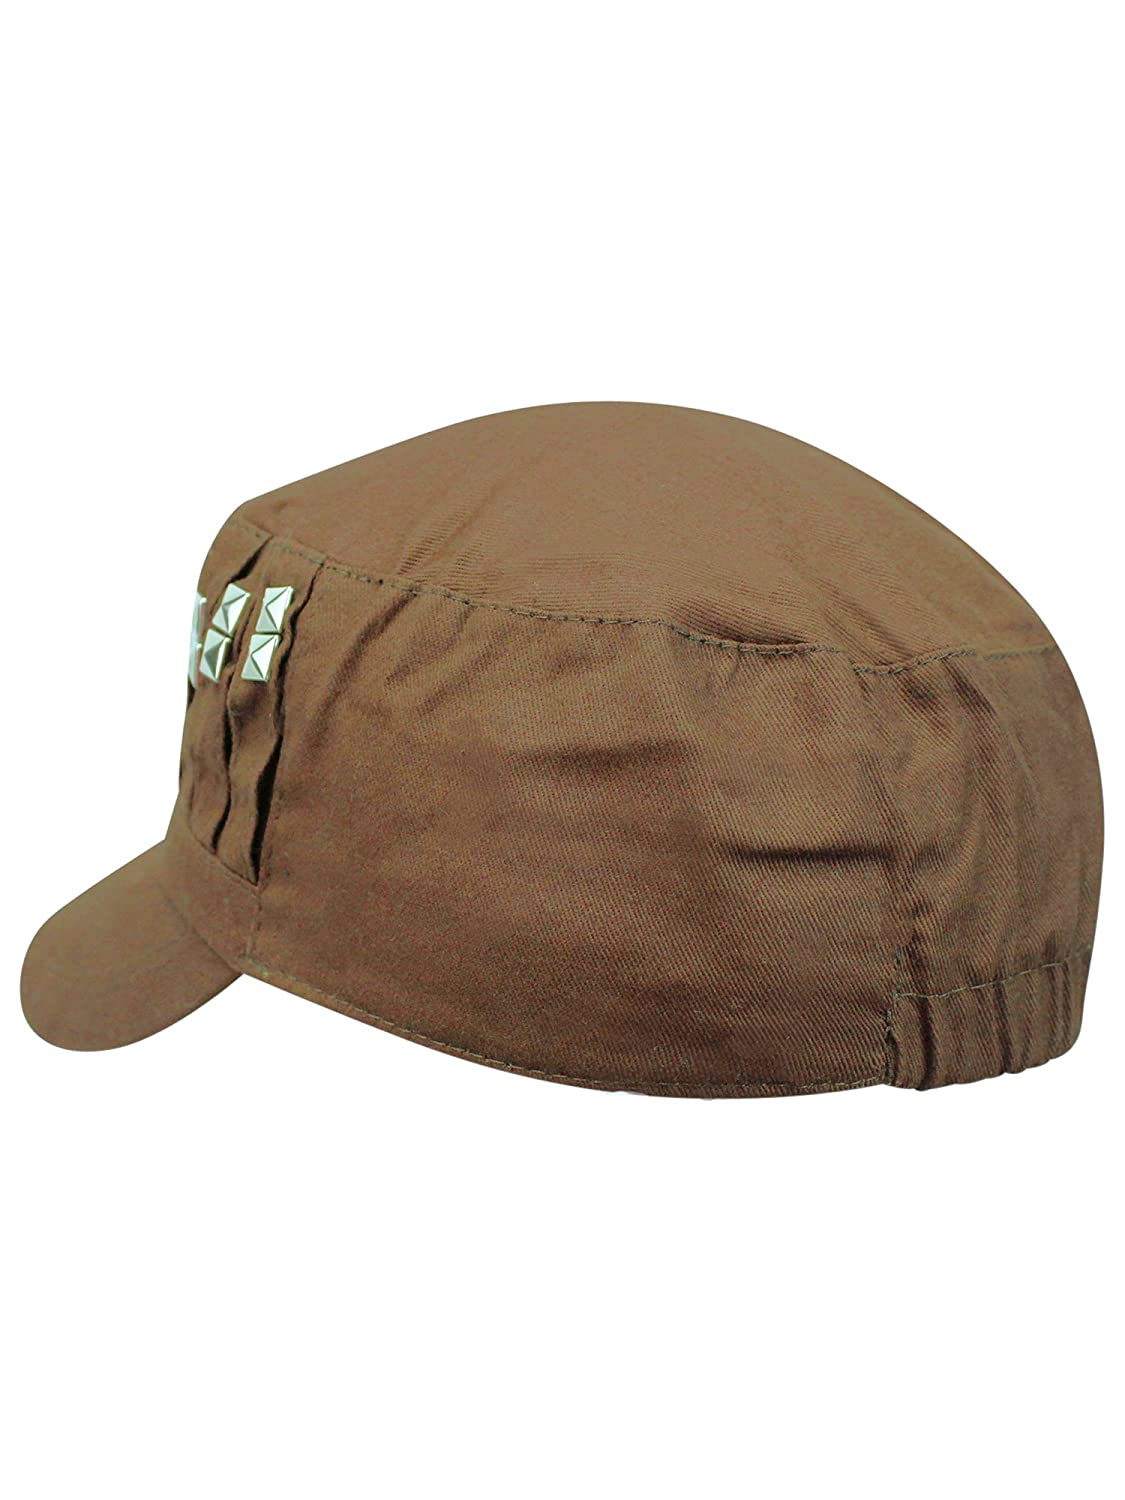 fa42581eff56 Luxury Divas Brown Cadet Style Hat with Studded Front at Amazon Women's  Clothing store: Baseball Caps